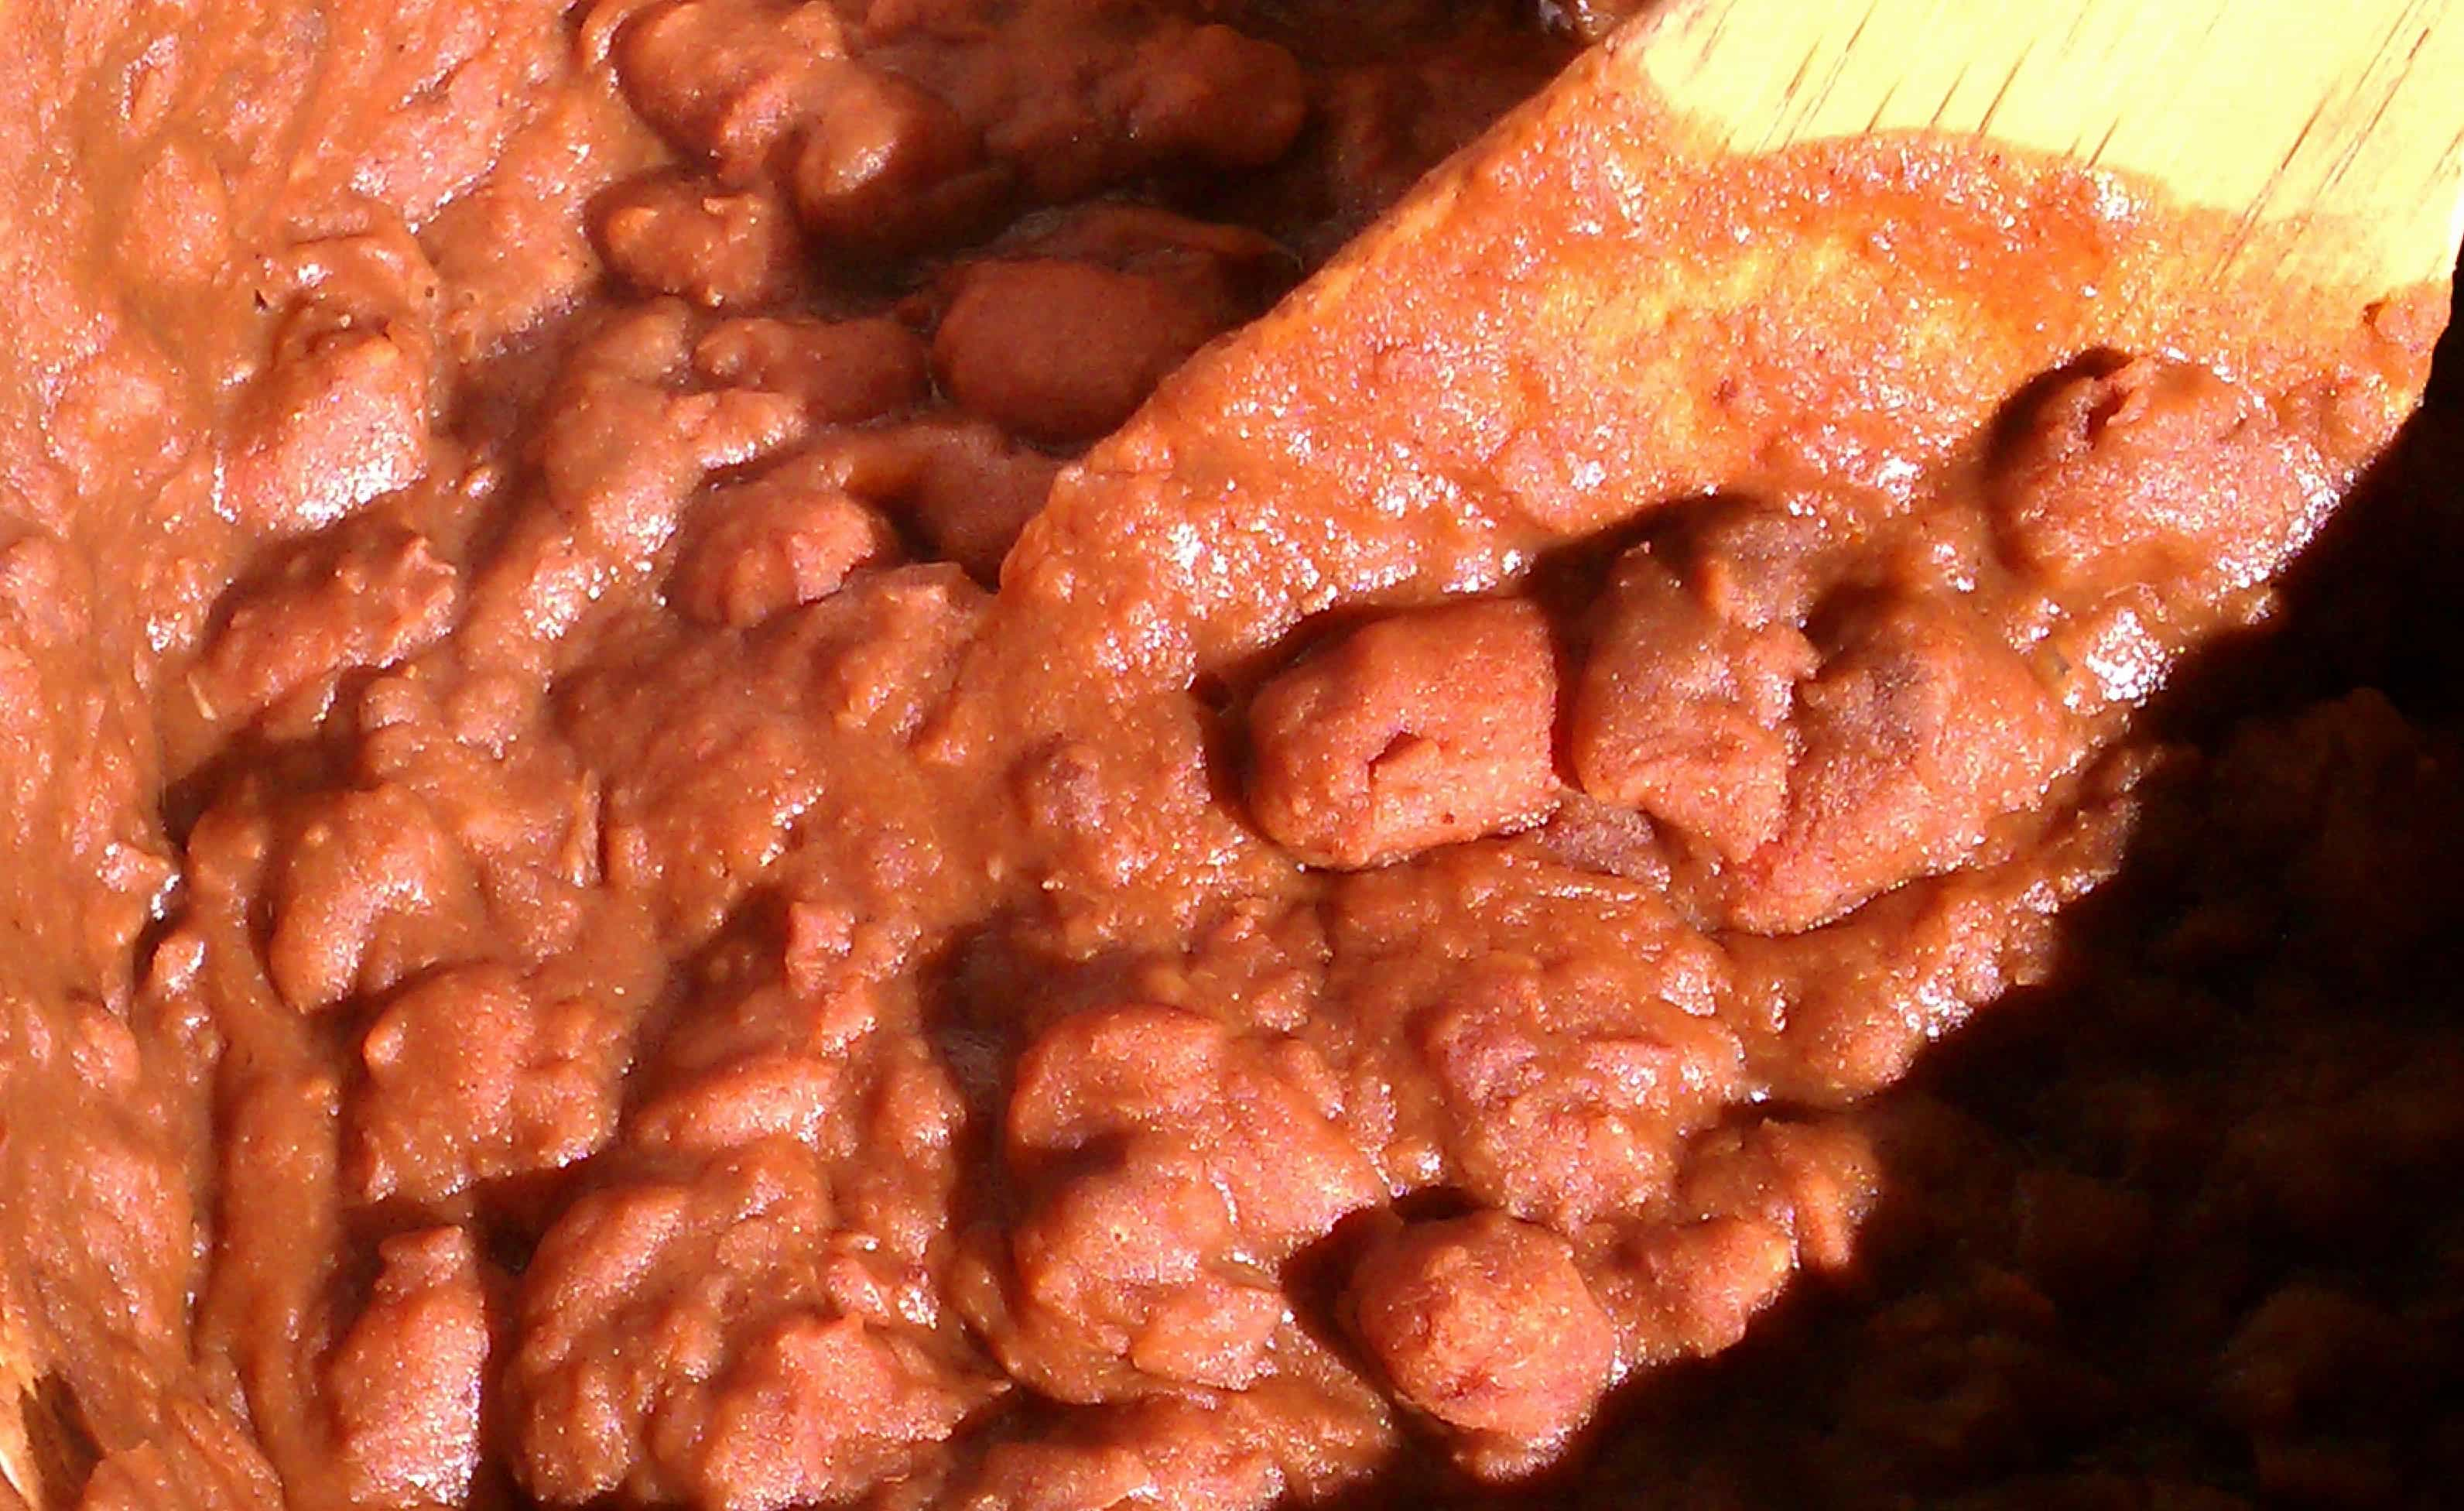 Beyond Easy (Not) Refried Beans